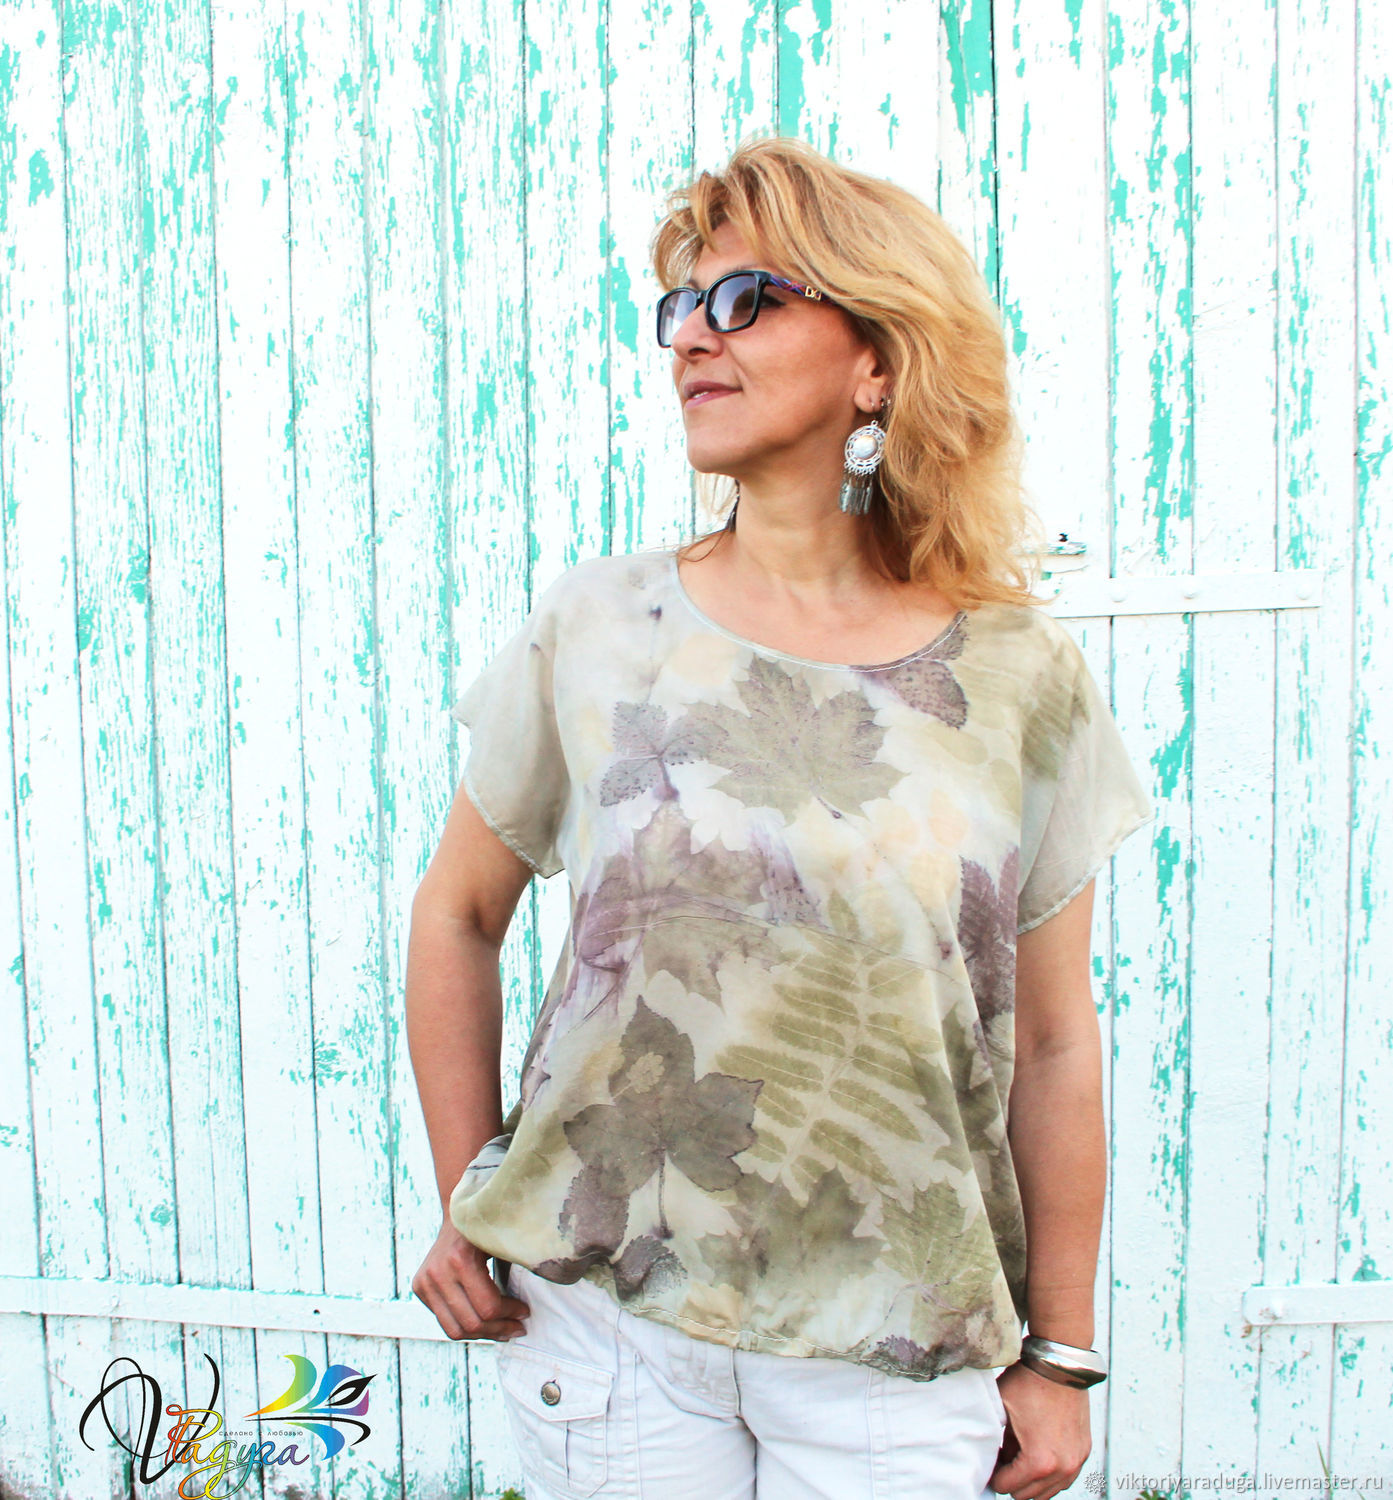 Studio rainbow Victoria, ekoprint, eco style, natural clothing, natural silk, blouse, batik clothing, Studio rainbow, gift girl, gifts for women, exclusive, author's work, buy a blouse,